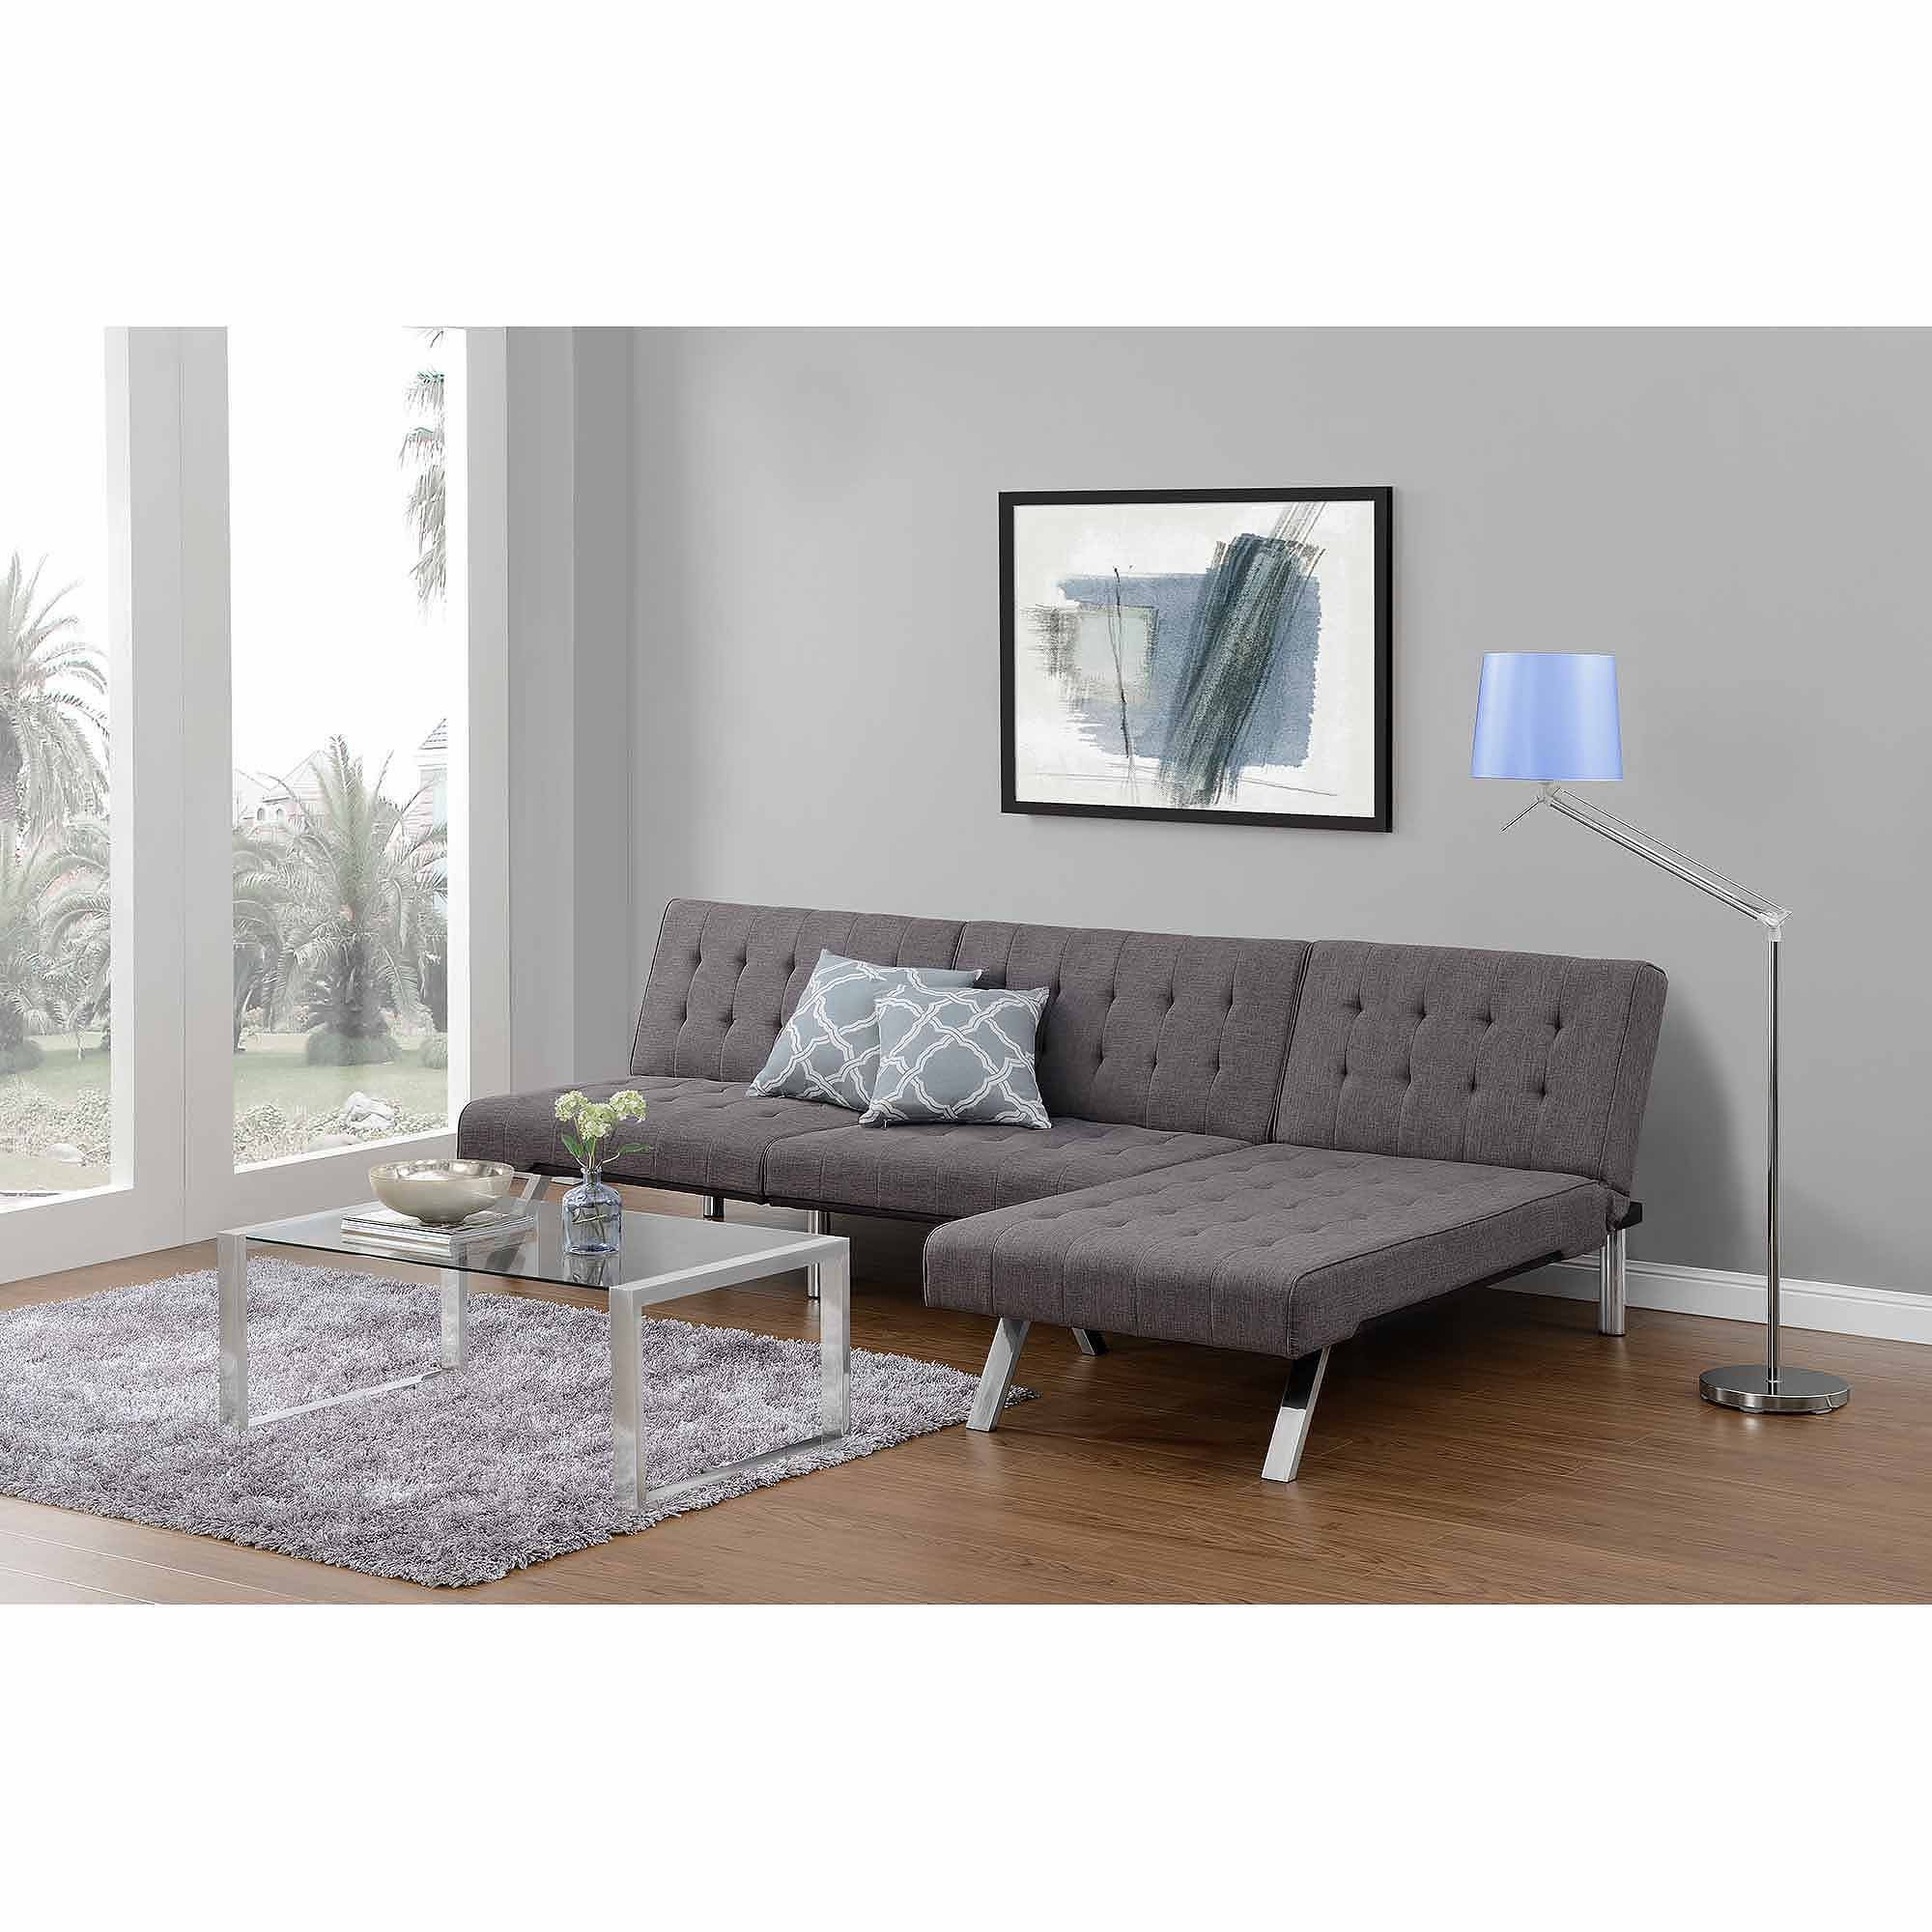 DHP Emily Futon Chaise Lounger Multiple Colors Image 10 of 13  sc 1 st  Walmart : emily futon chaise lounger - Sectionals, Sofas & Couches